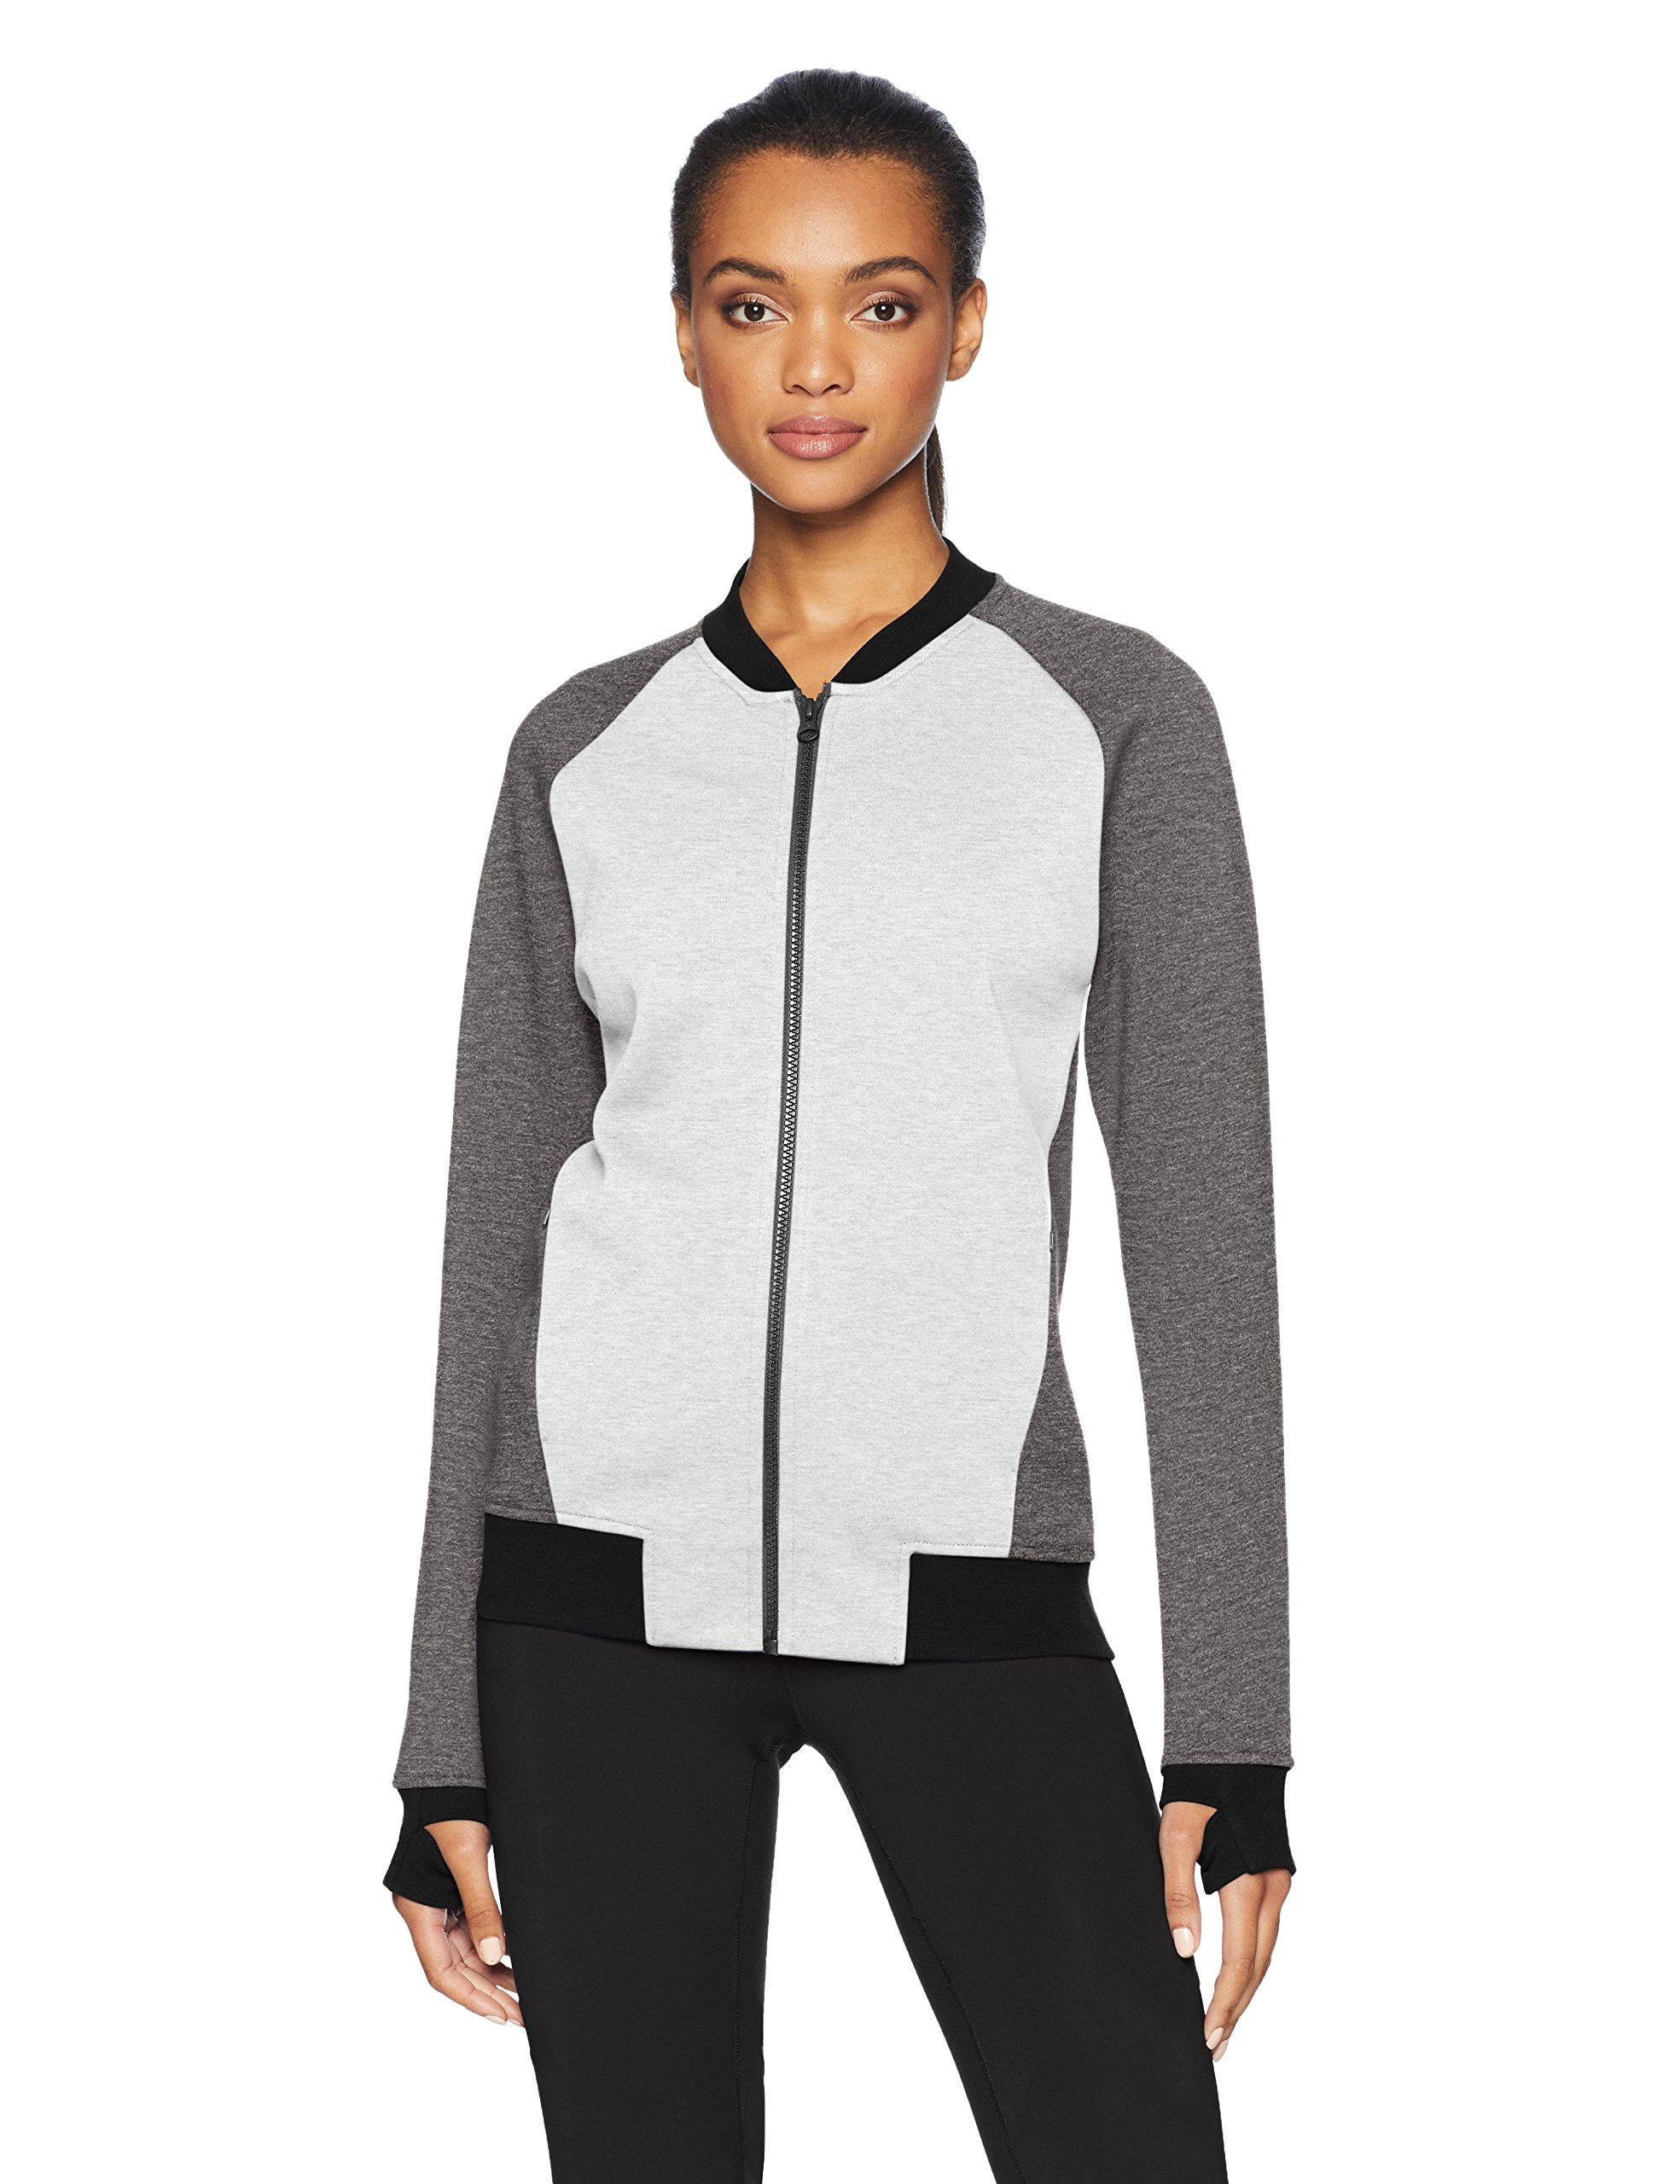 Amazon Brand - Core 10 Women's (XS-3X) Motion Tech Fleece Fitted Bomber Full-Zip Jacket